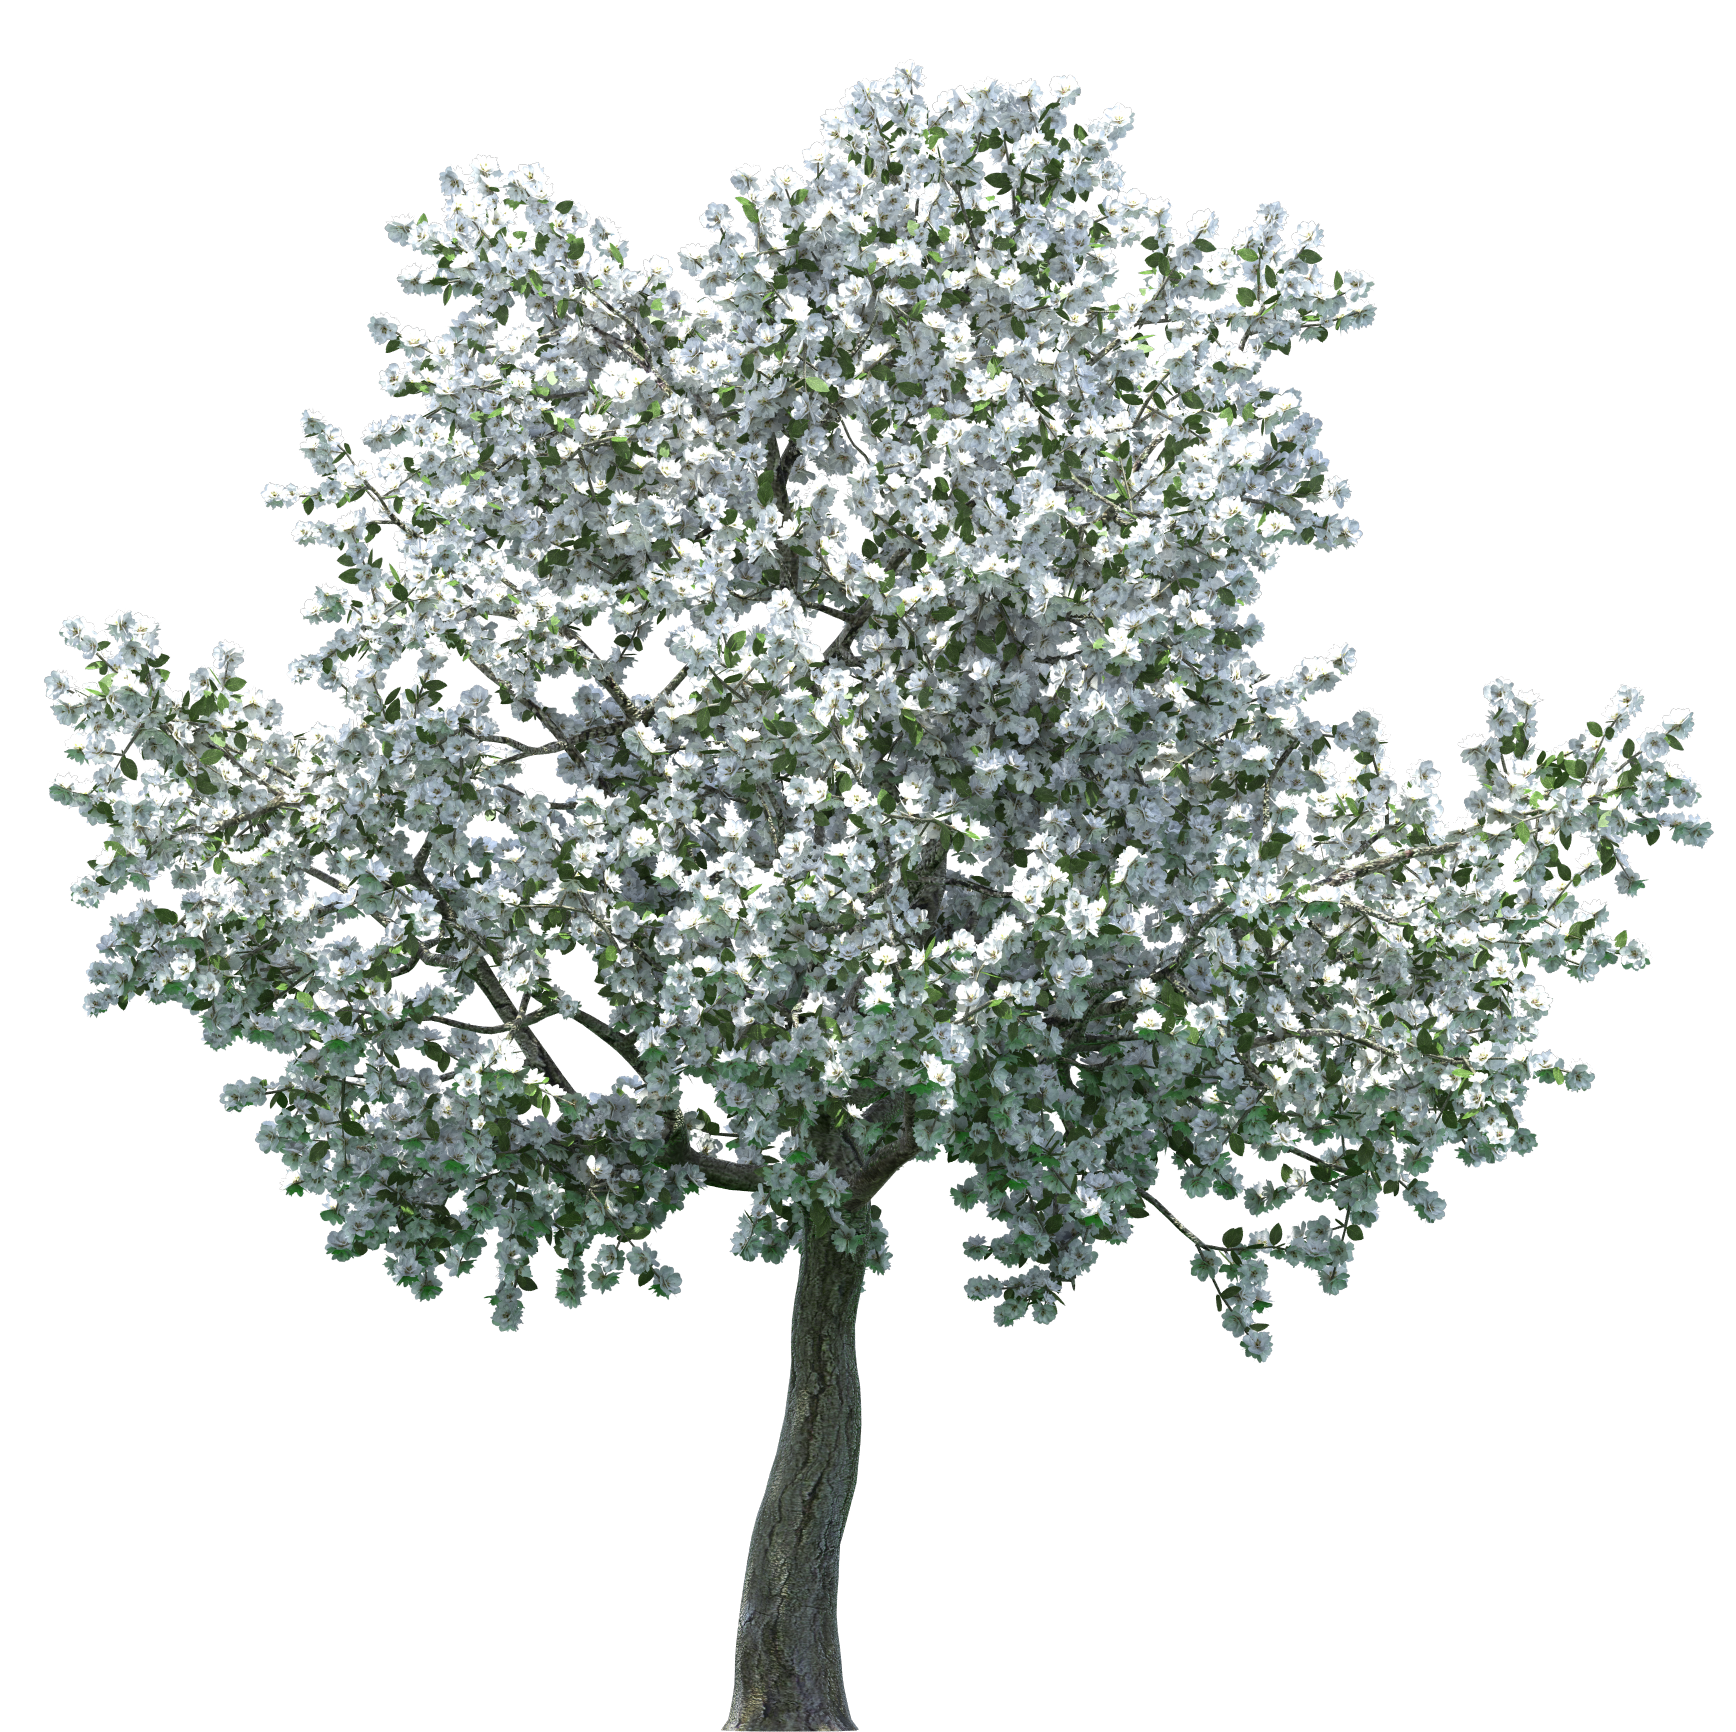 Clipart rose apple tree. Realistic blossom png clip